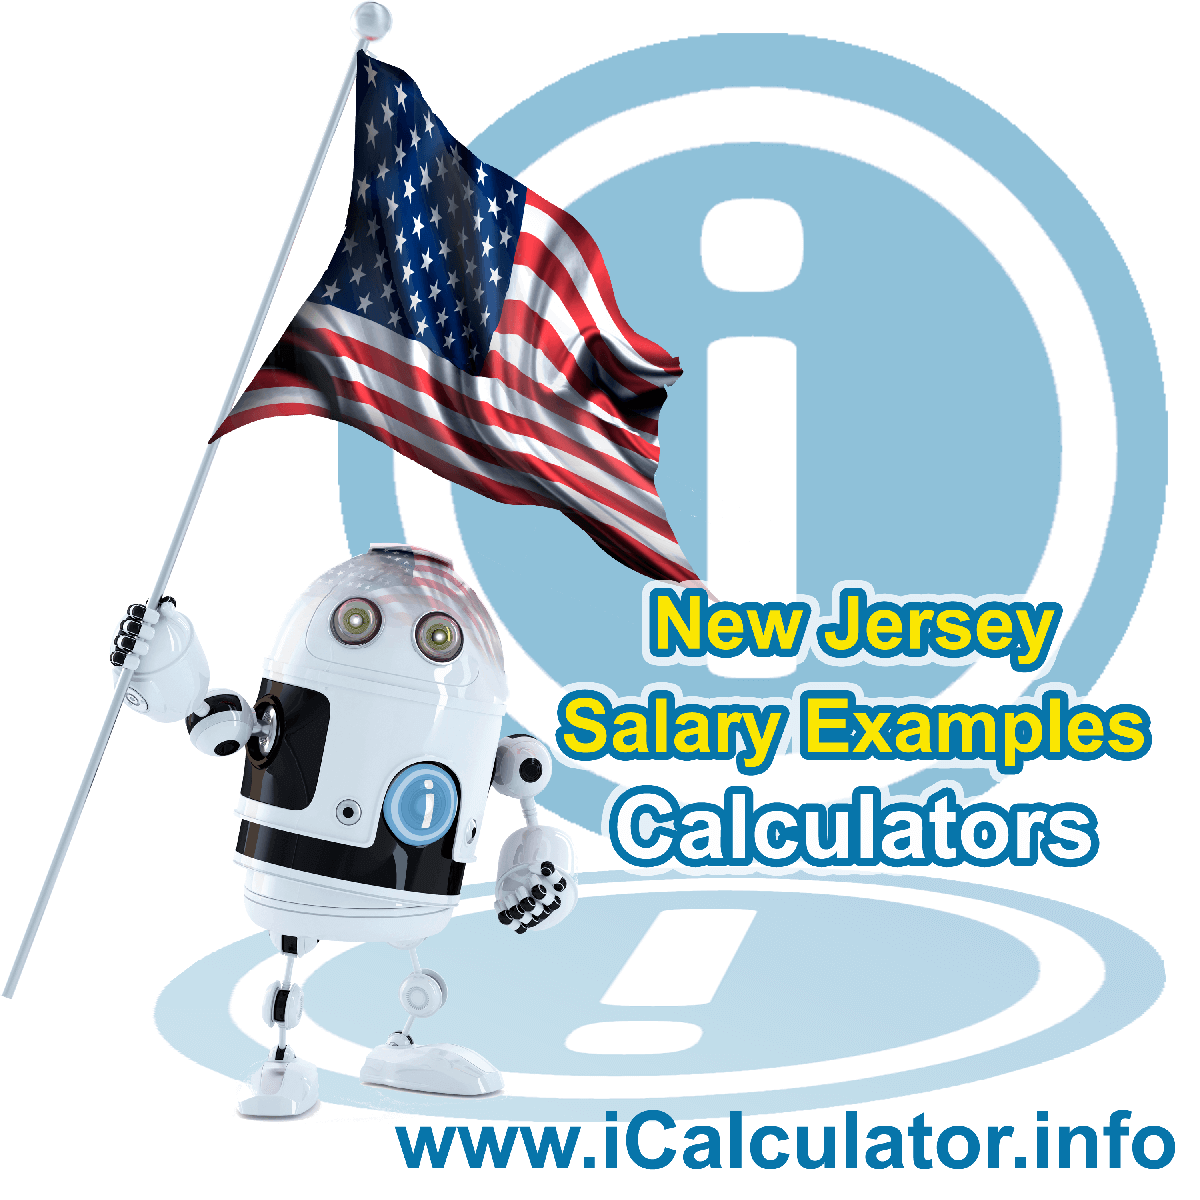 New Jersey Salary Example for $150.00 in 2020 | iCalculator | $150.00 salary example for employee and employer paying New Jersey State tincome taxes. Detailed salary after tax calculation including New Jersey State Tax, Federal State Tax, Medicare Deductions, Social Security, Capital Gains and other income tax and salary deductions complete with supporting New Jersey state tax tables